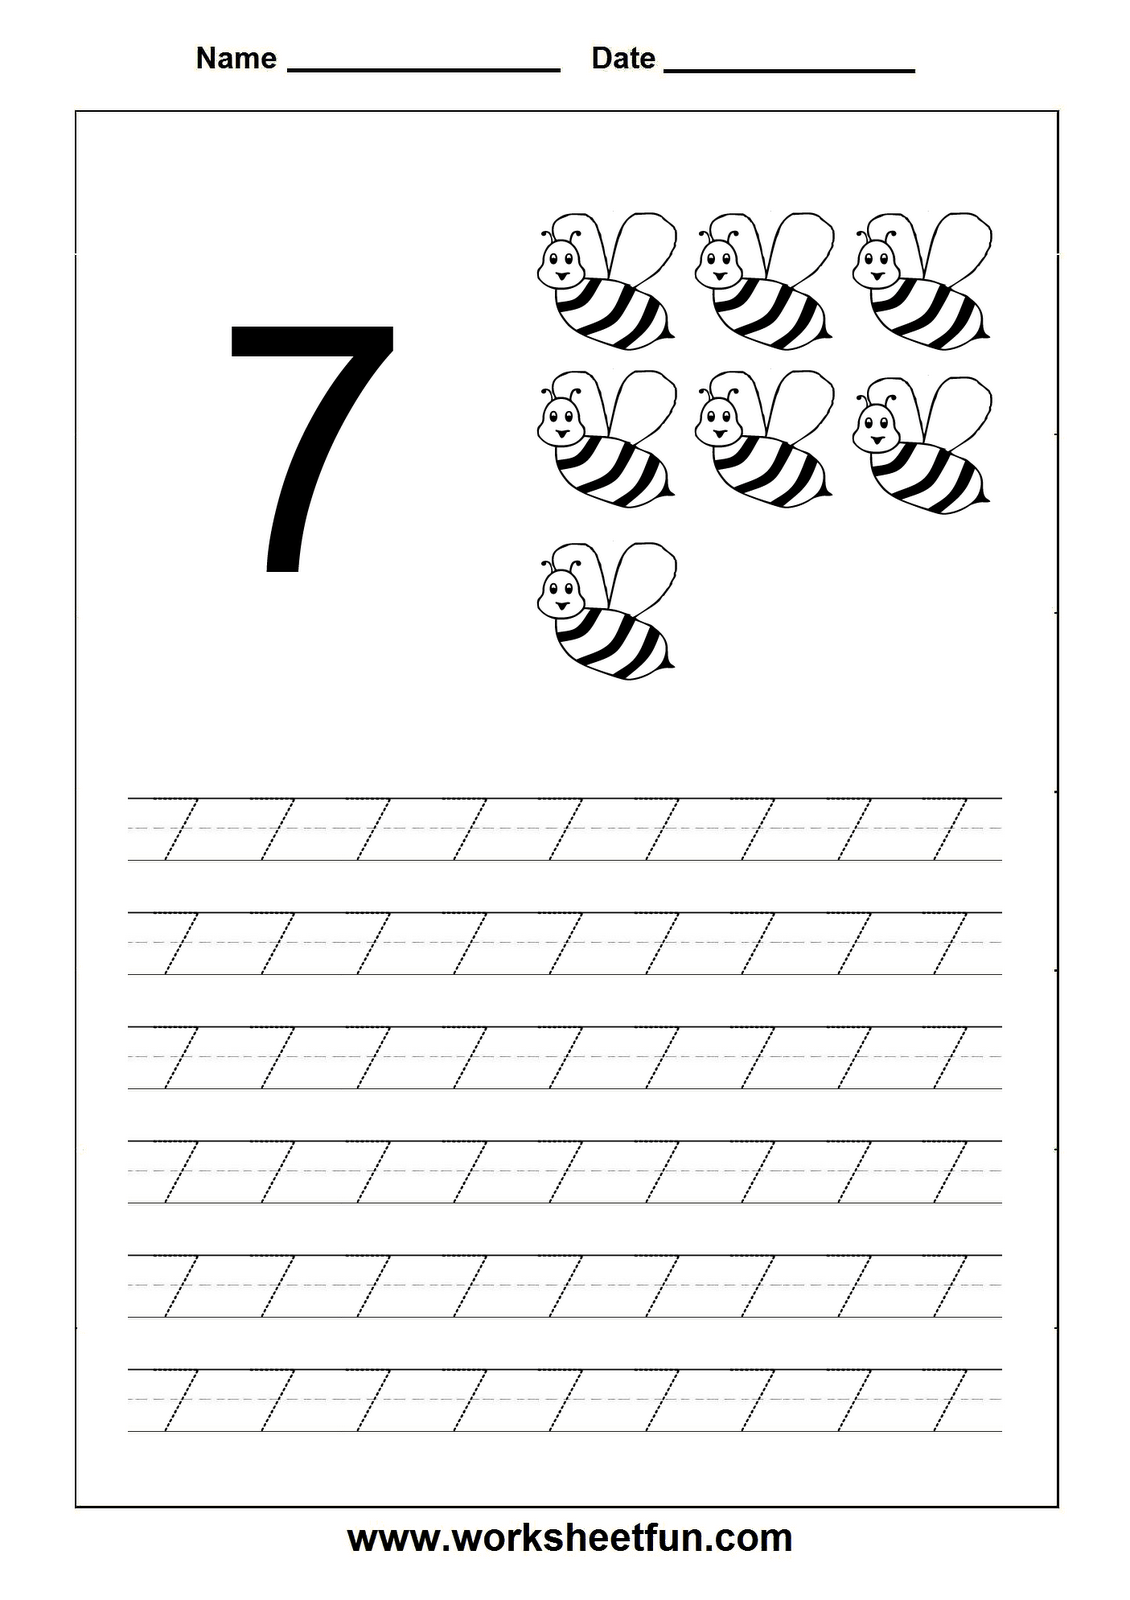 15 Best Images Of Number 7 Worksheets For Pre K